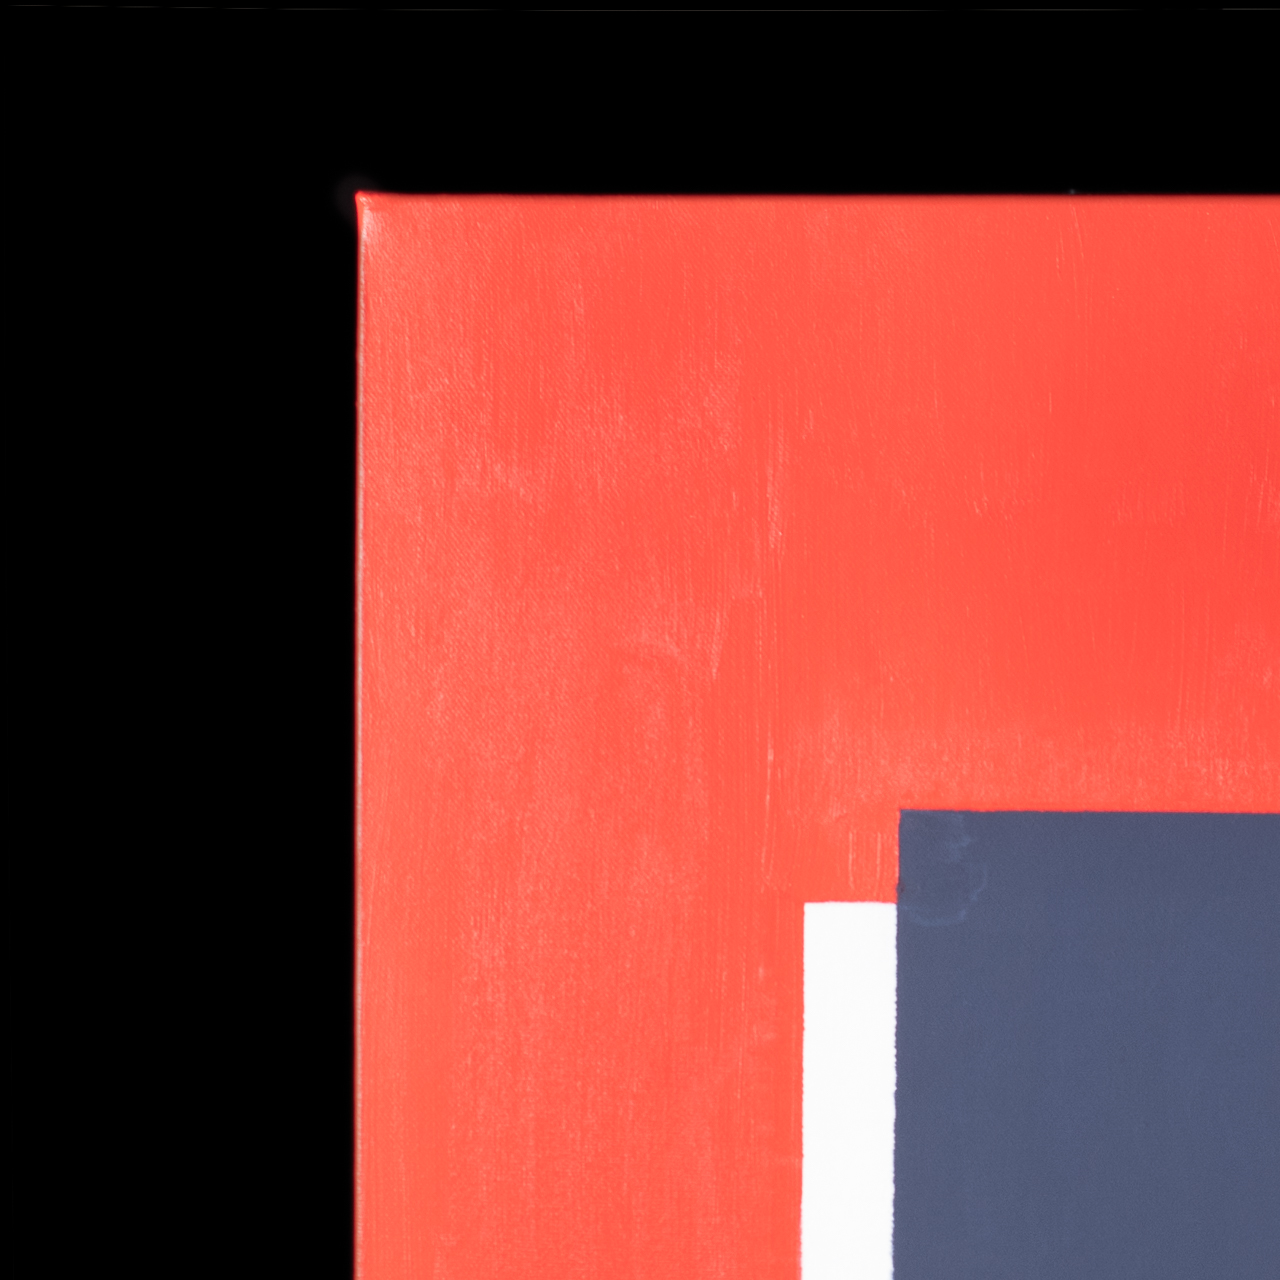 Pair of Contemporary Abstract Paintings Jacob Lloyds - Image 10 of 13